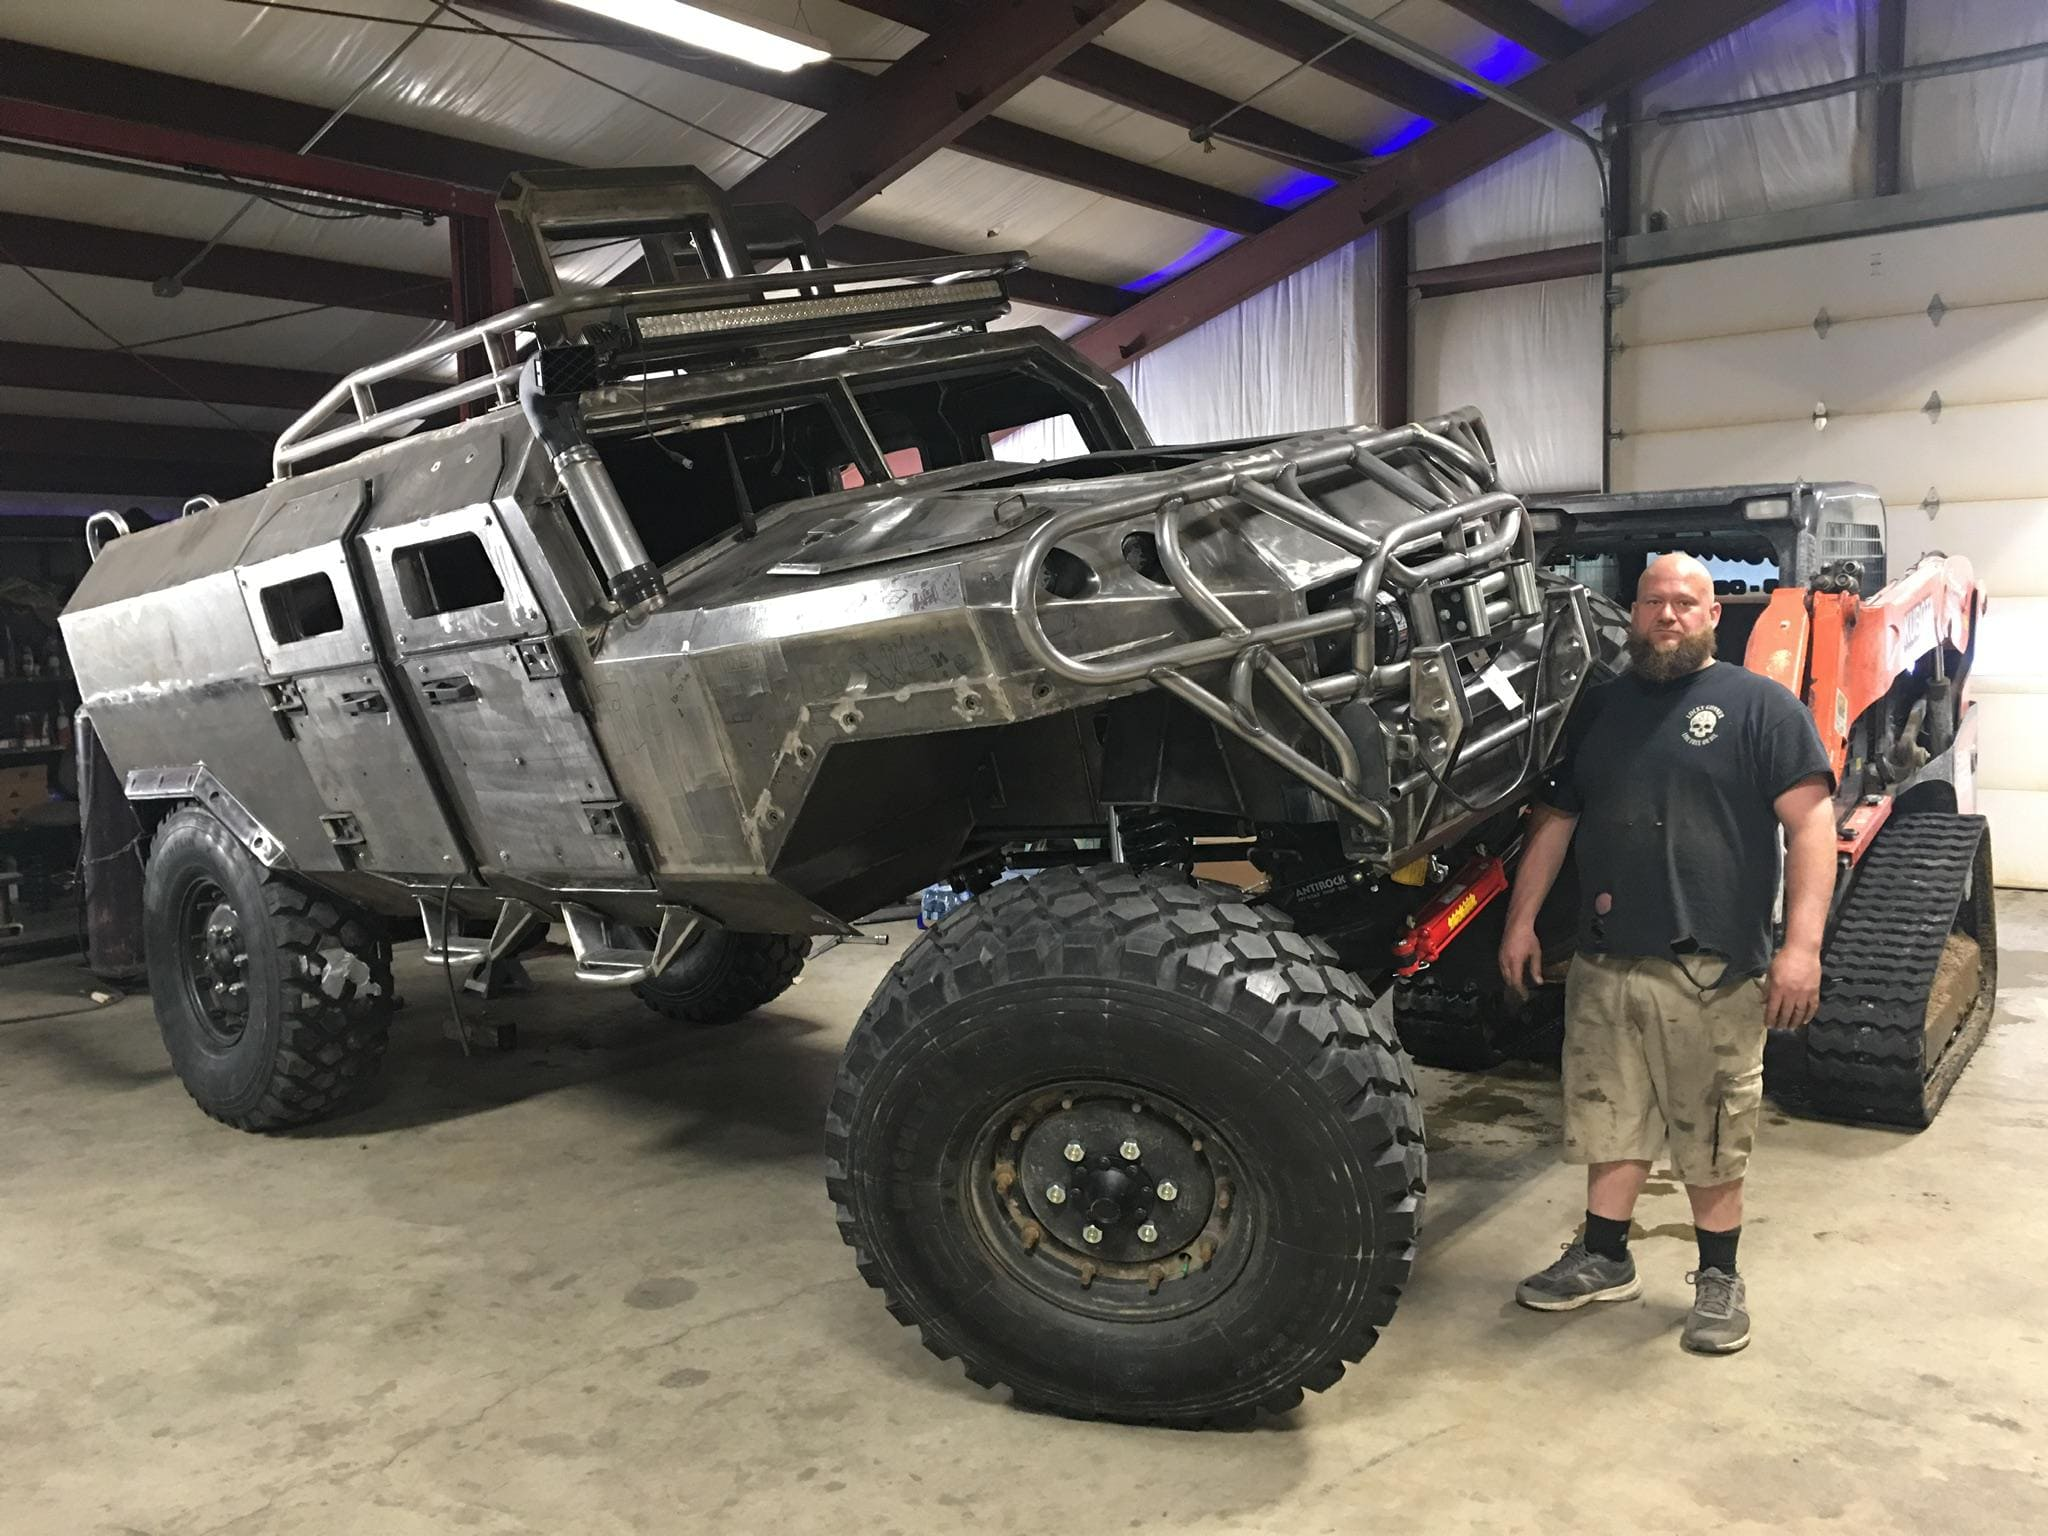 The Personal Survival Vehicle from Lucky Gunner Garage was custom-built from scratch for its singular mission.